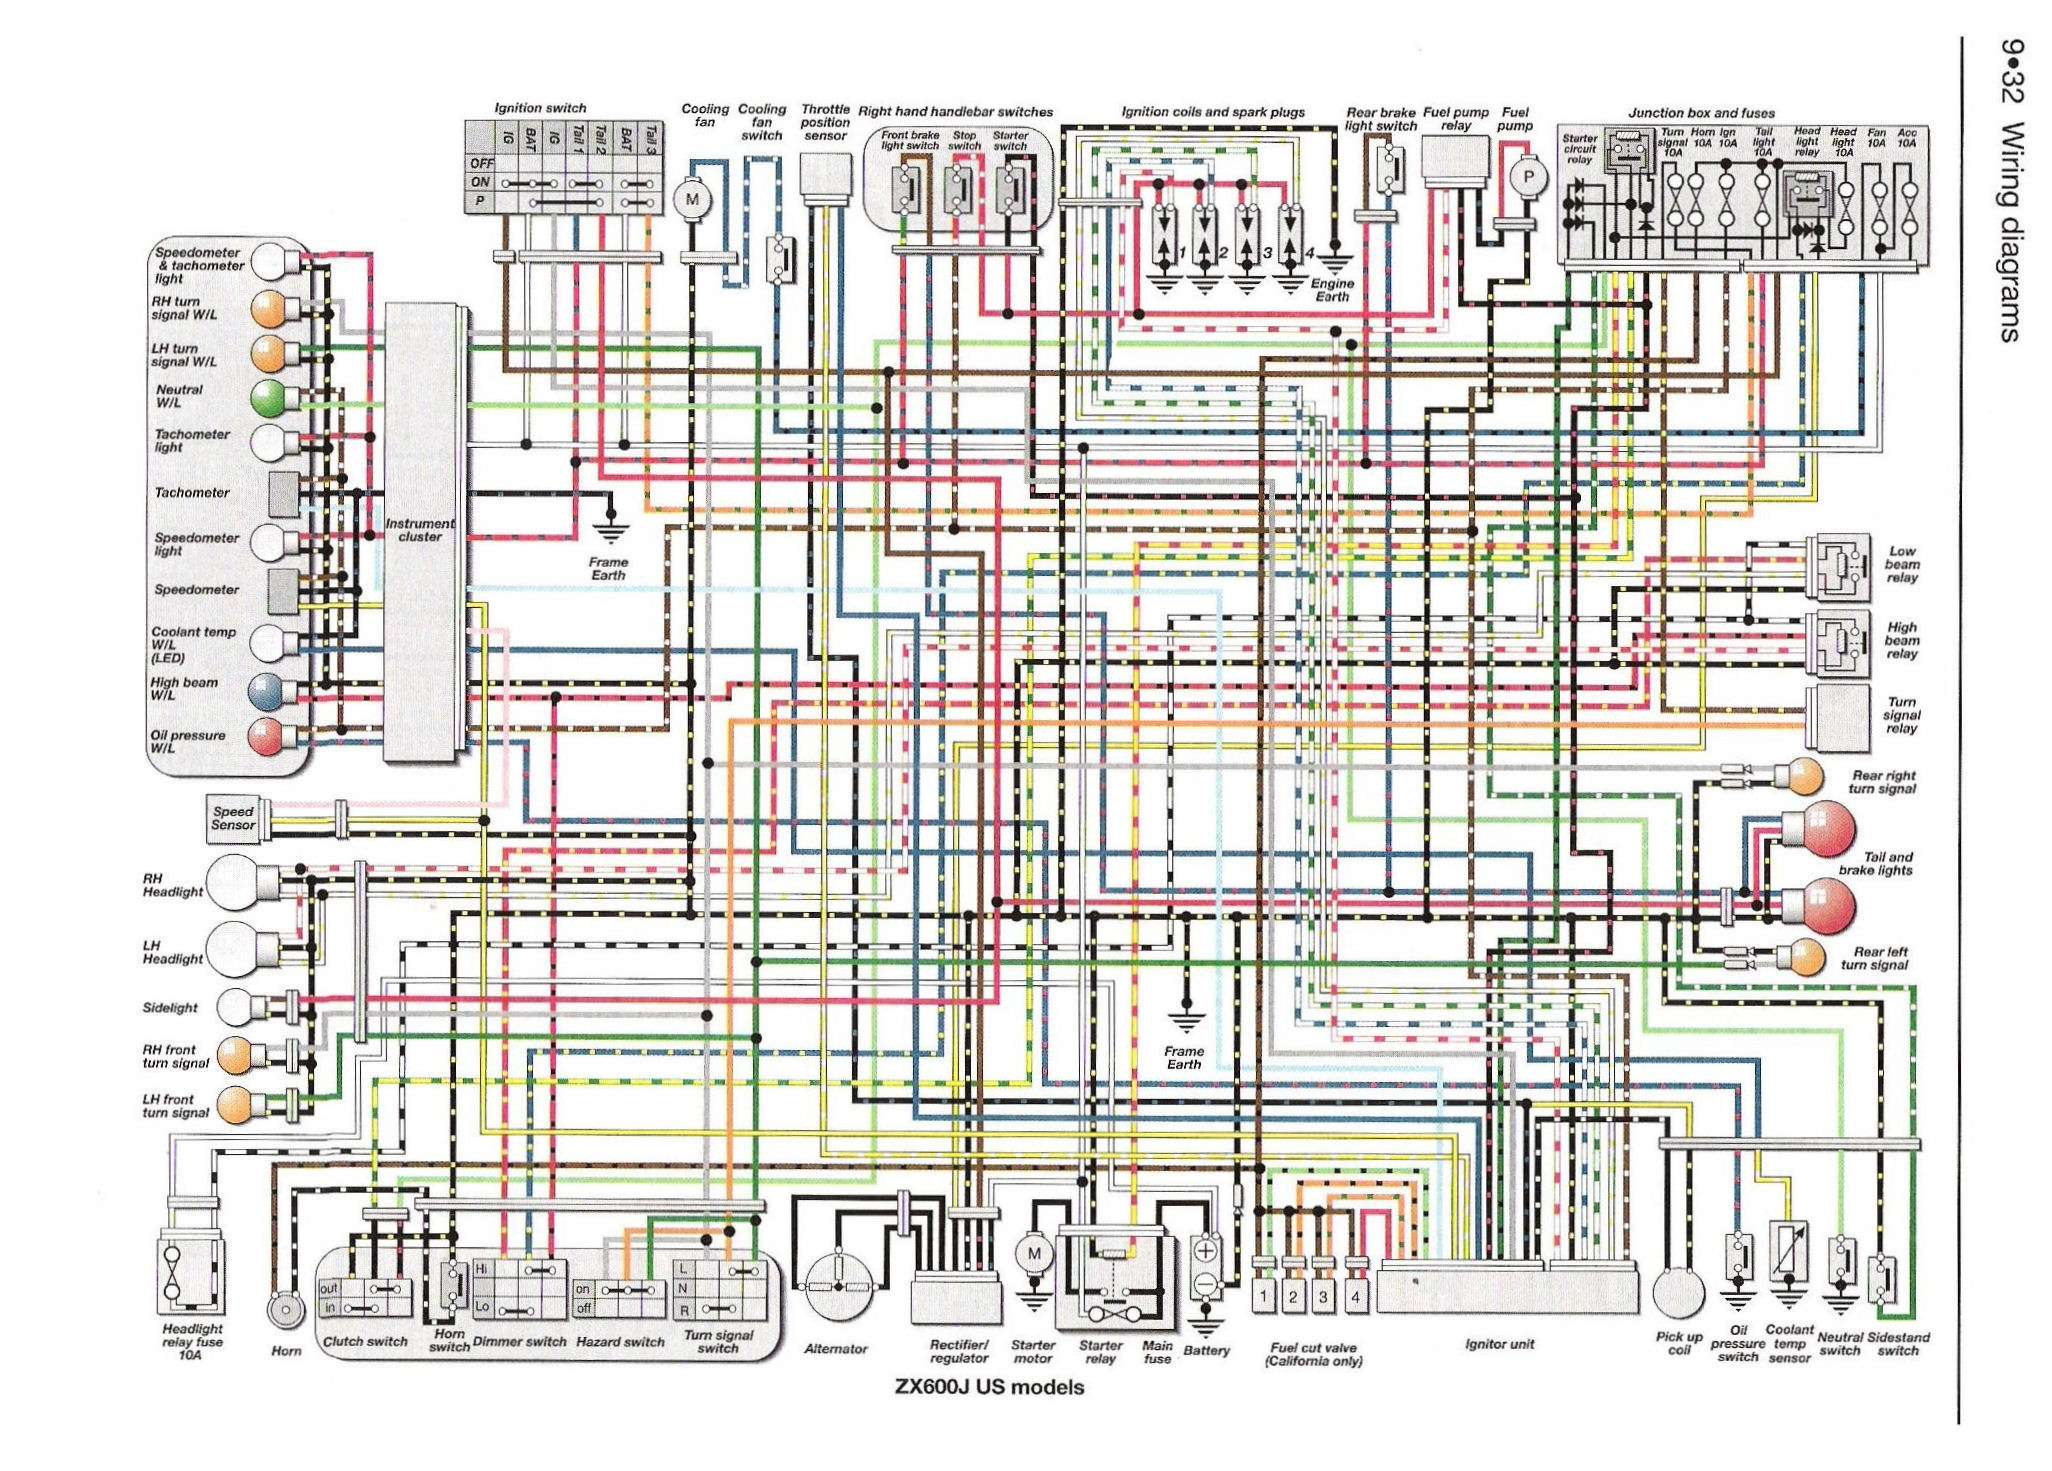 Zx1000 Wiring Diagram -Farmall 460 Tractor Wiring Diagram | Begeboy Wiring  Diagram SourceBegeboy Wiring Diagram Source